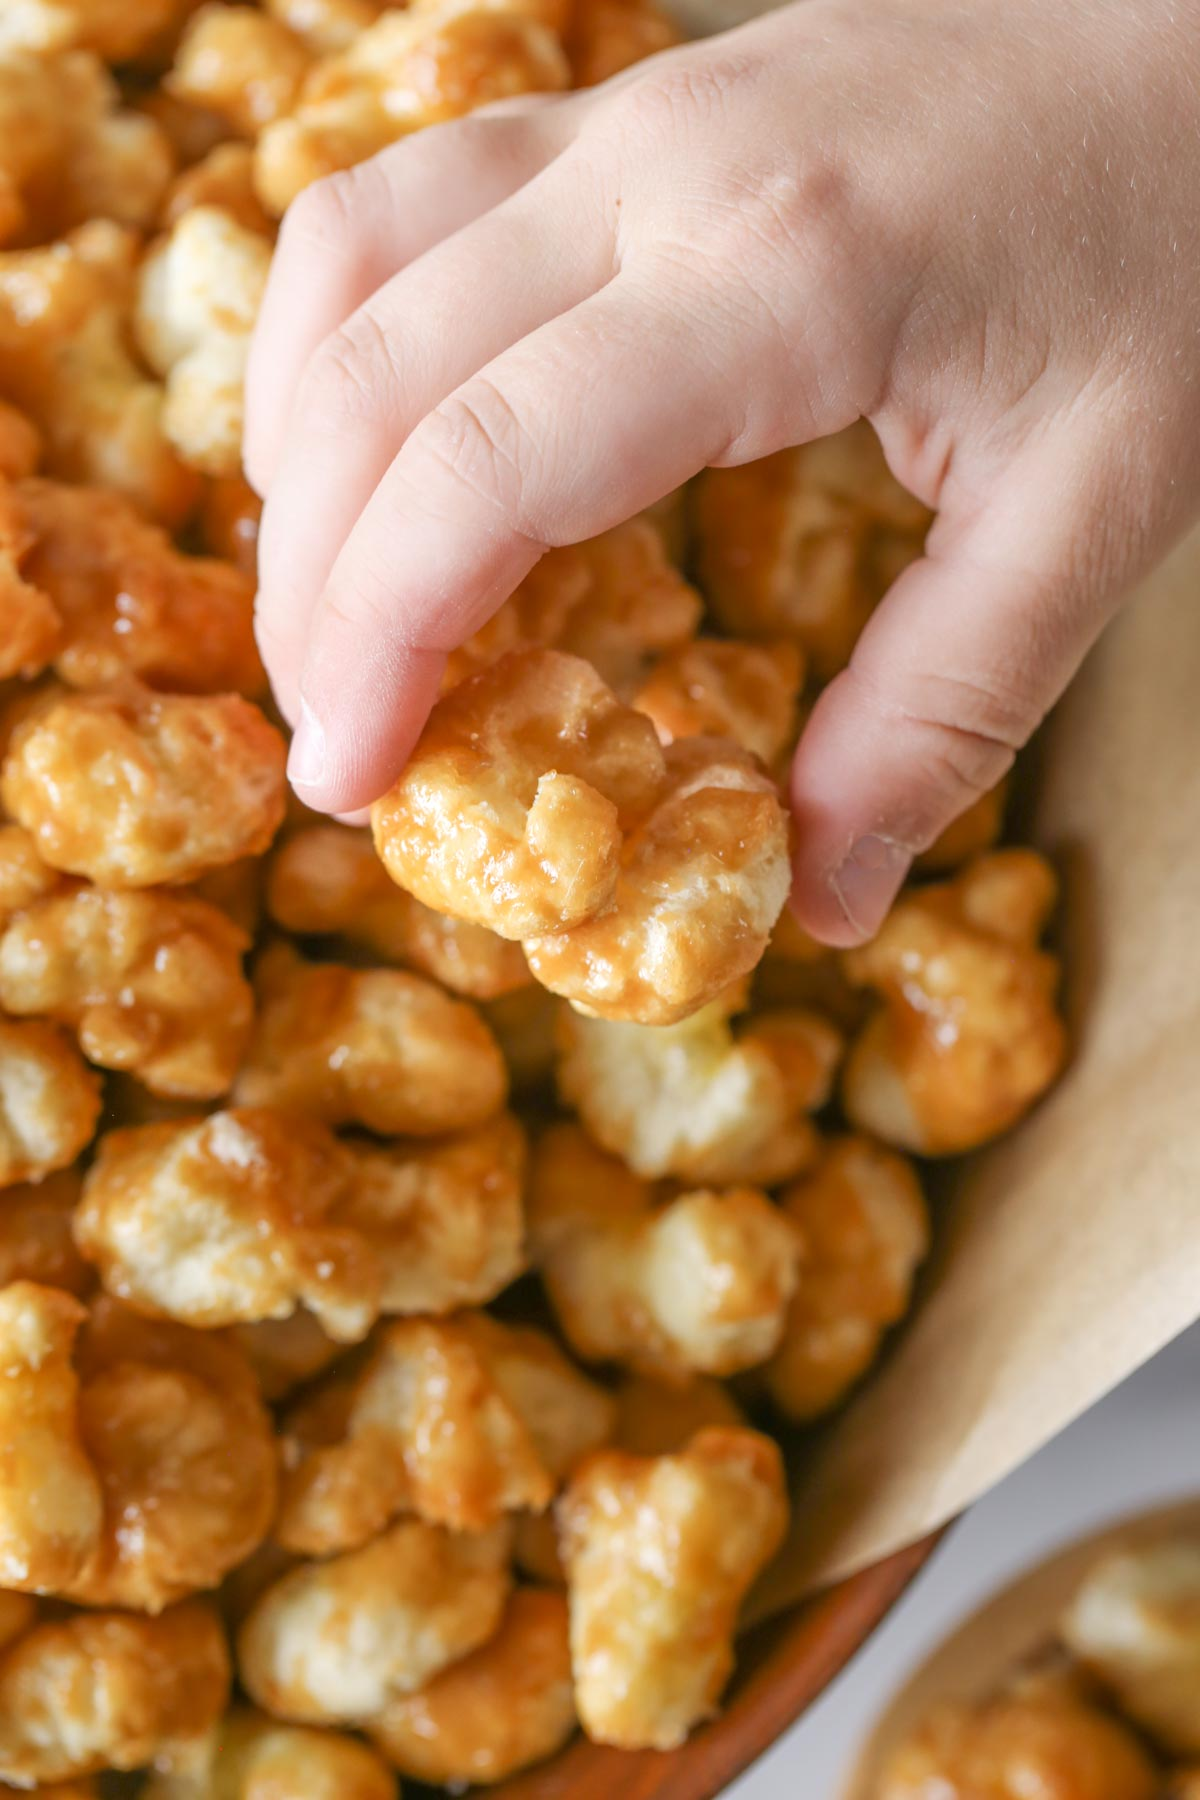 Close up shot of a hand grabbing Caramel Puff Corn from a wood bowl lined with parchment paper.